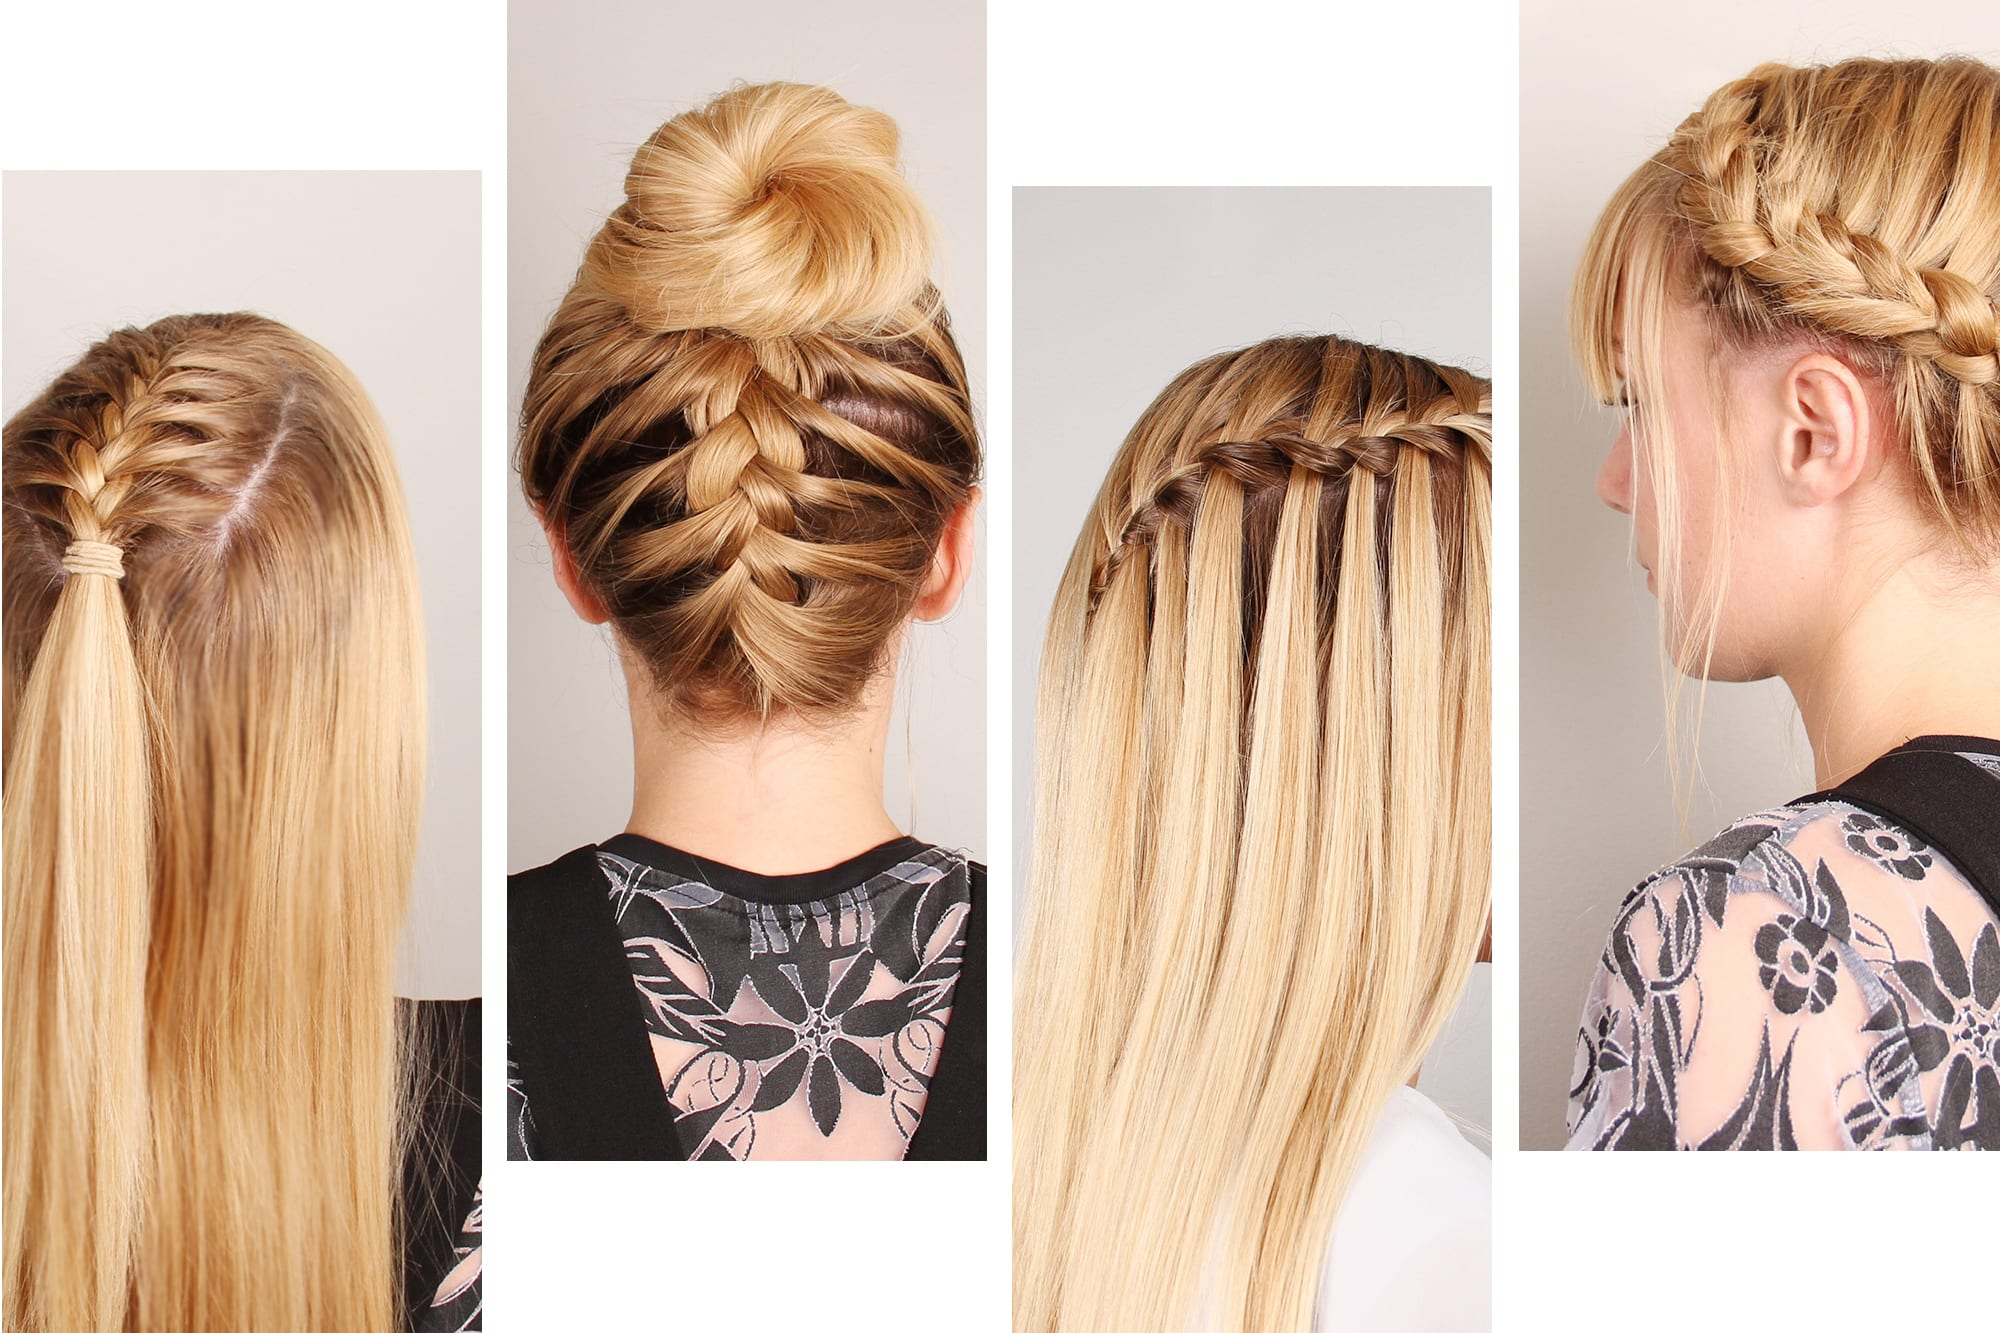 The Braidy Bunch: Four Festival Hairstyles